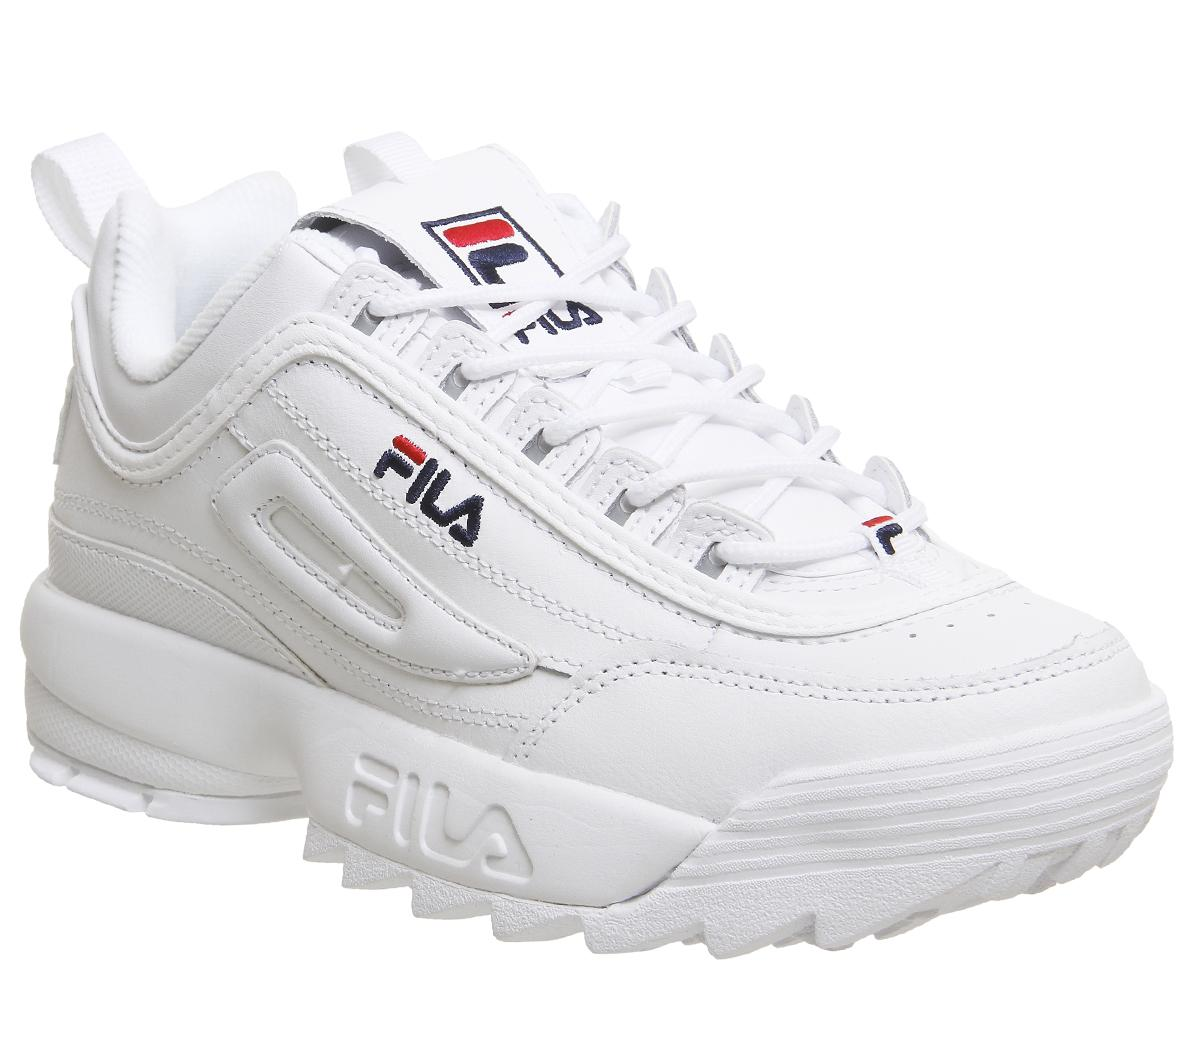 Fila Disruptor II Trainers White Leather - Sneaker damen